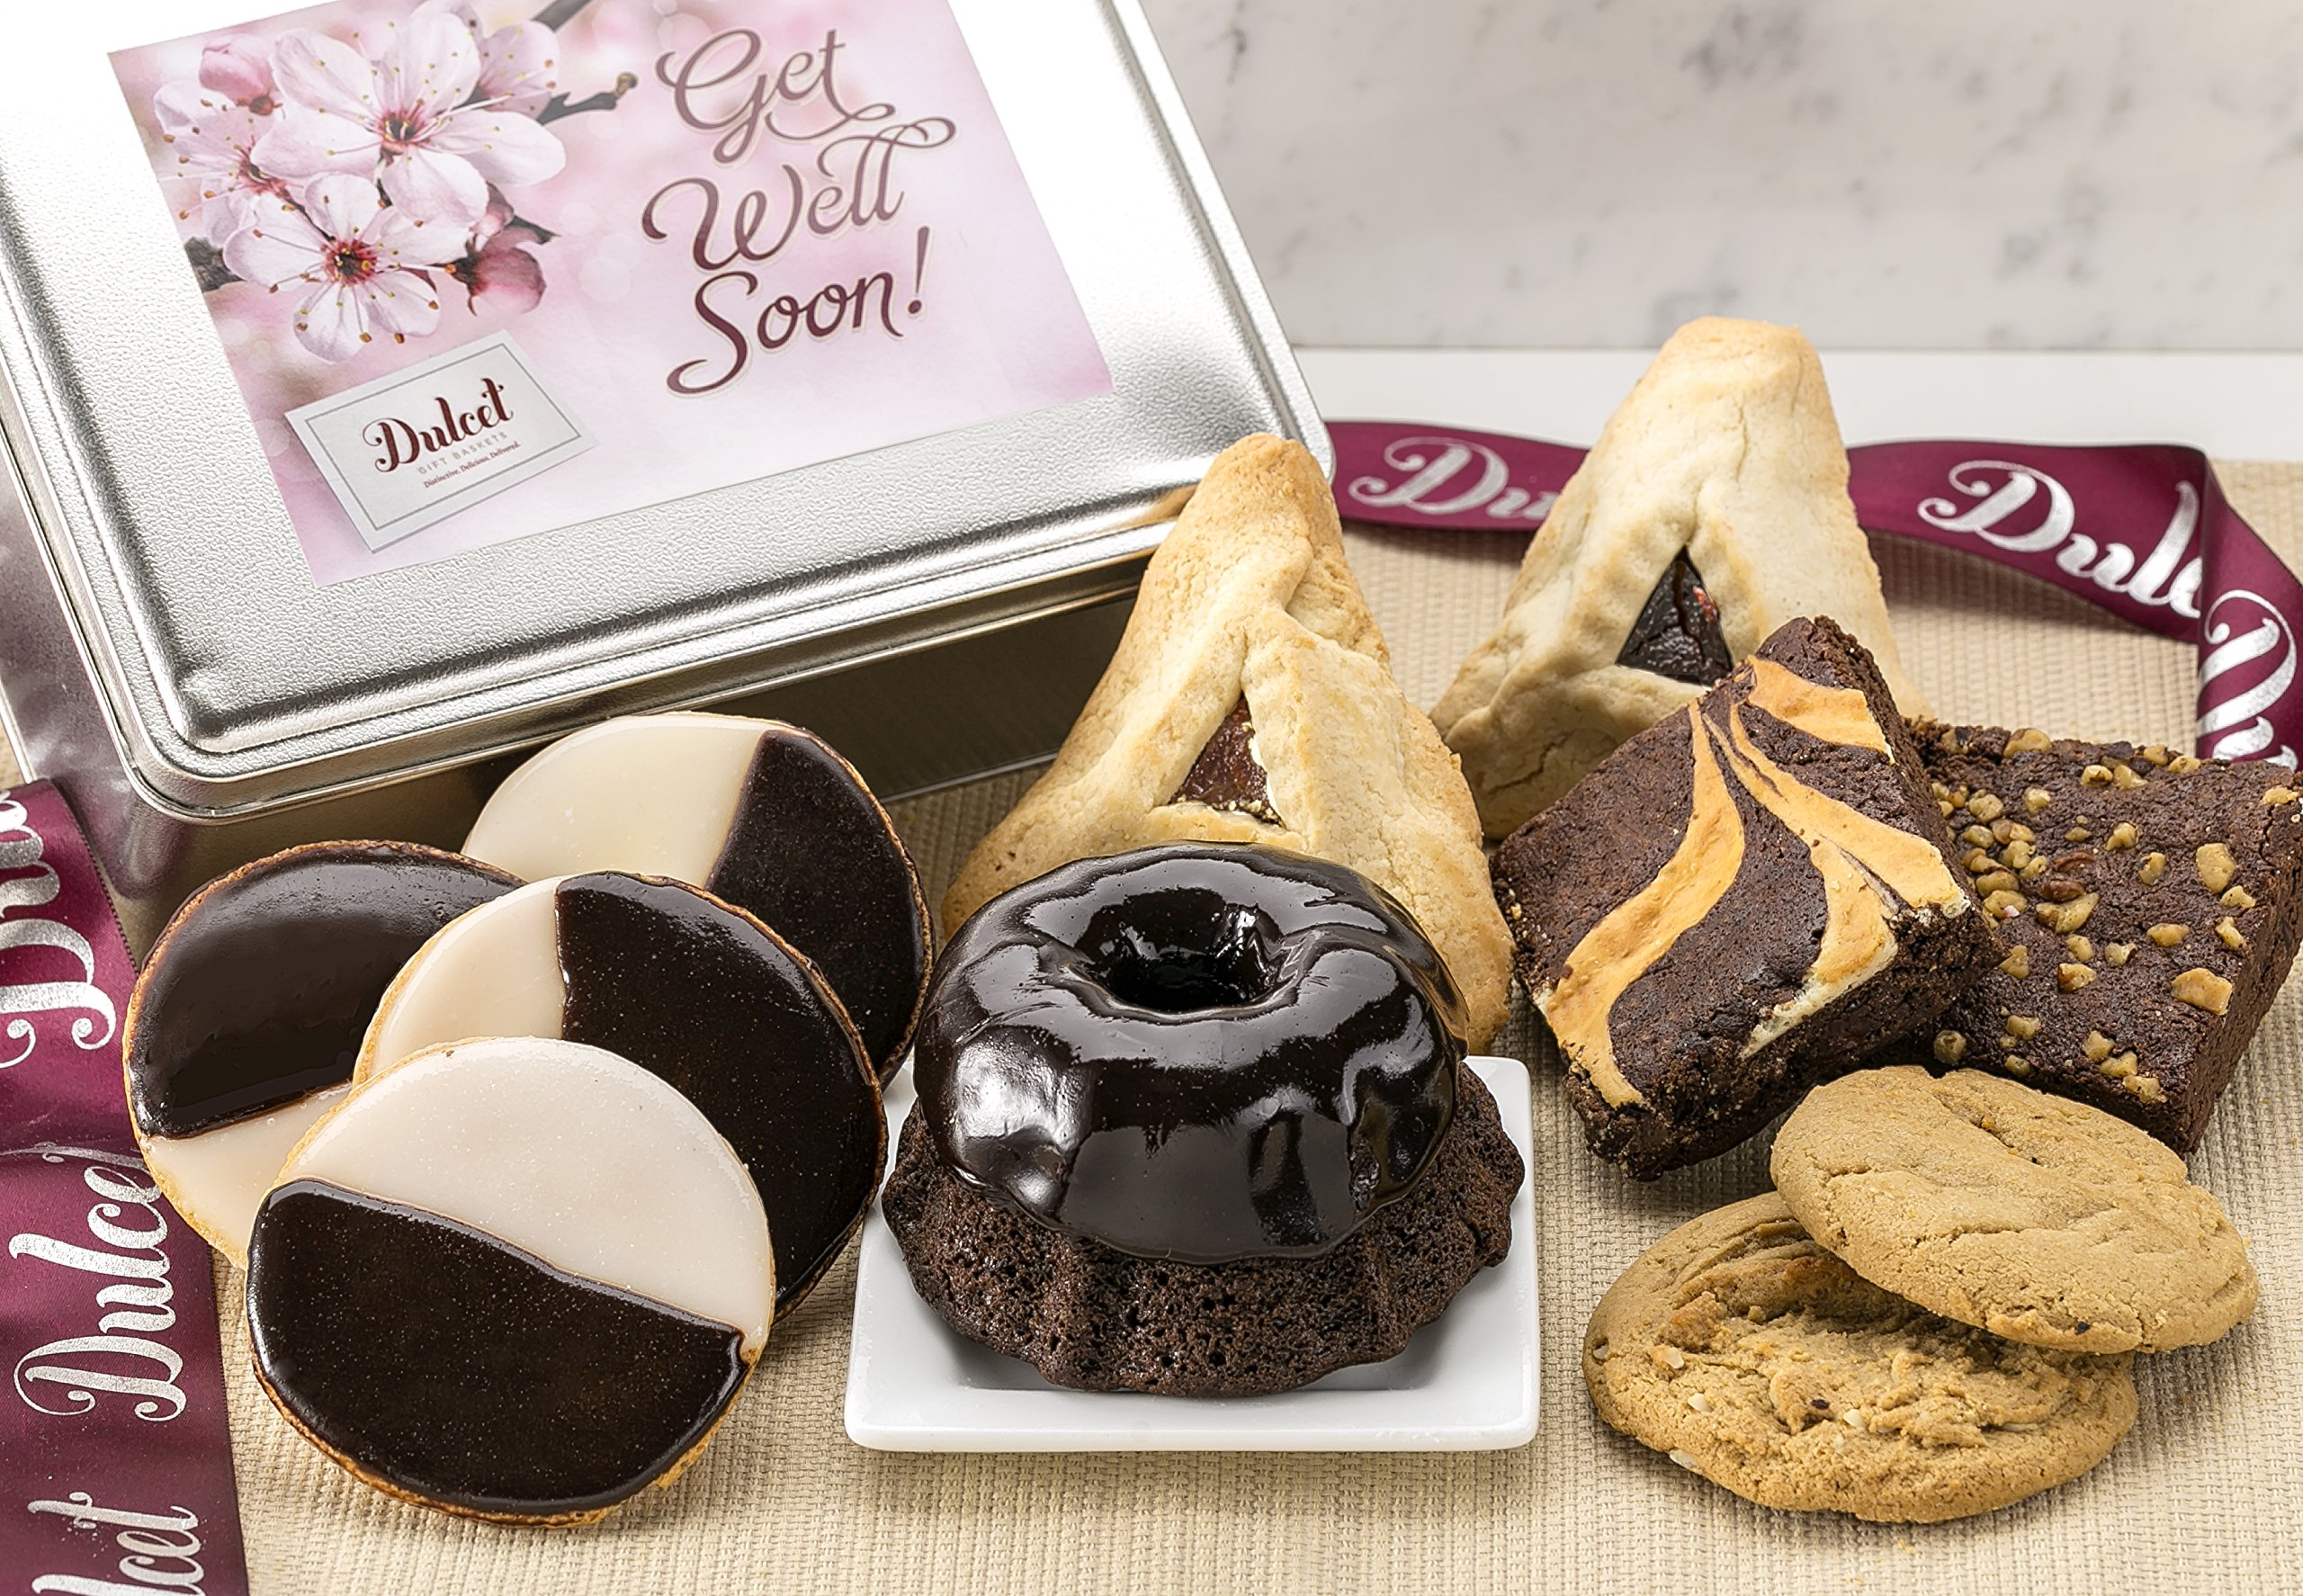 Dulcet Gift Basket Get Well Soon Classic Baked Goods Recovery Snack Care Package, Idea For Men Women Him & Her.